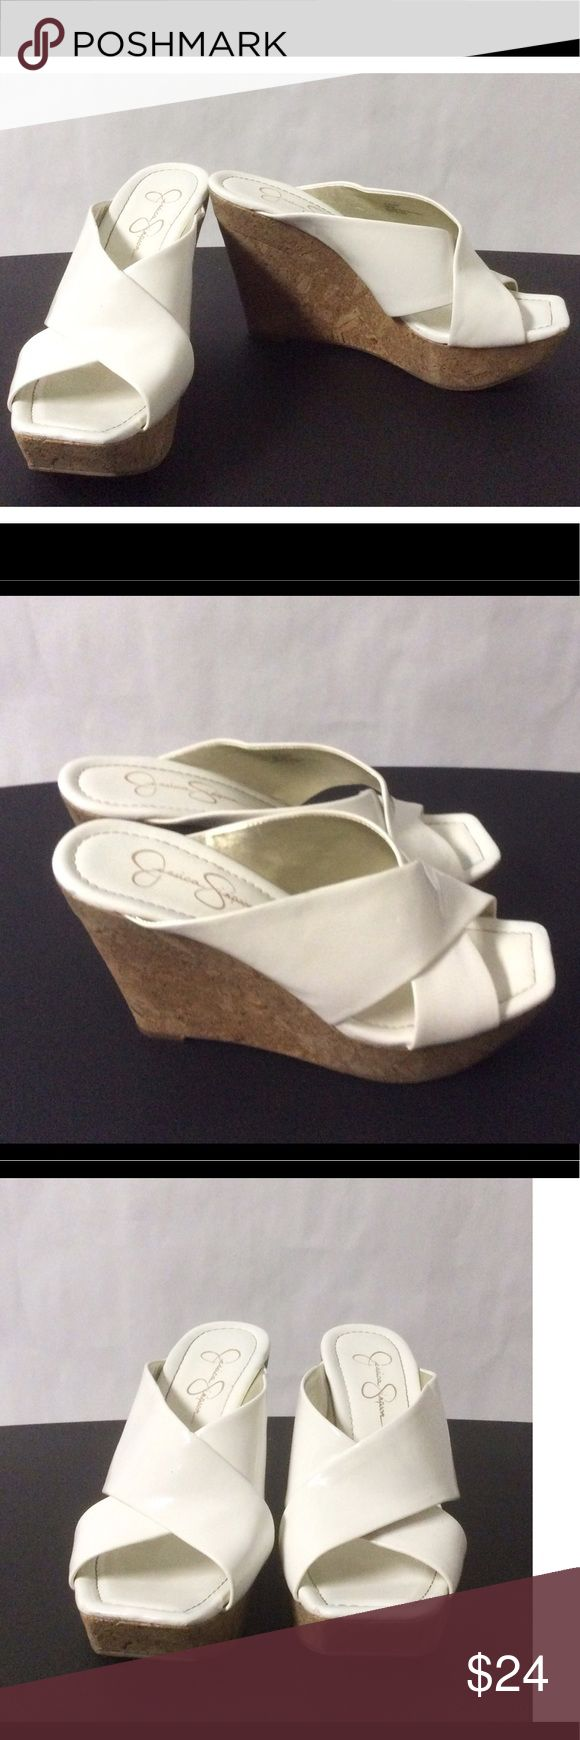 Jessica Simpson Wedges Size 8B 4 inch heels Jessica Simpson Shoes Wedges